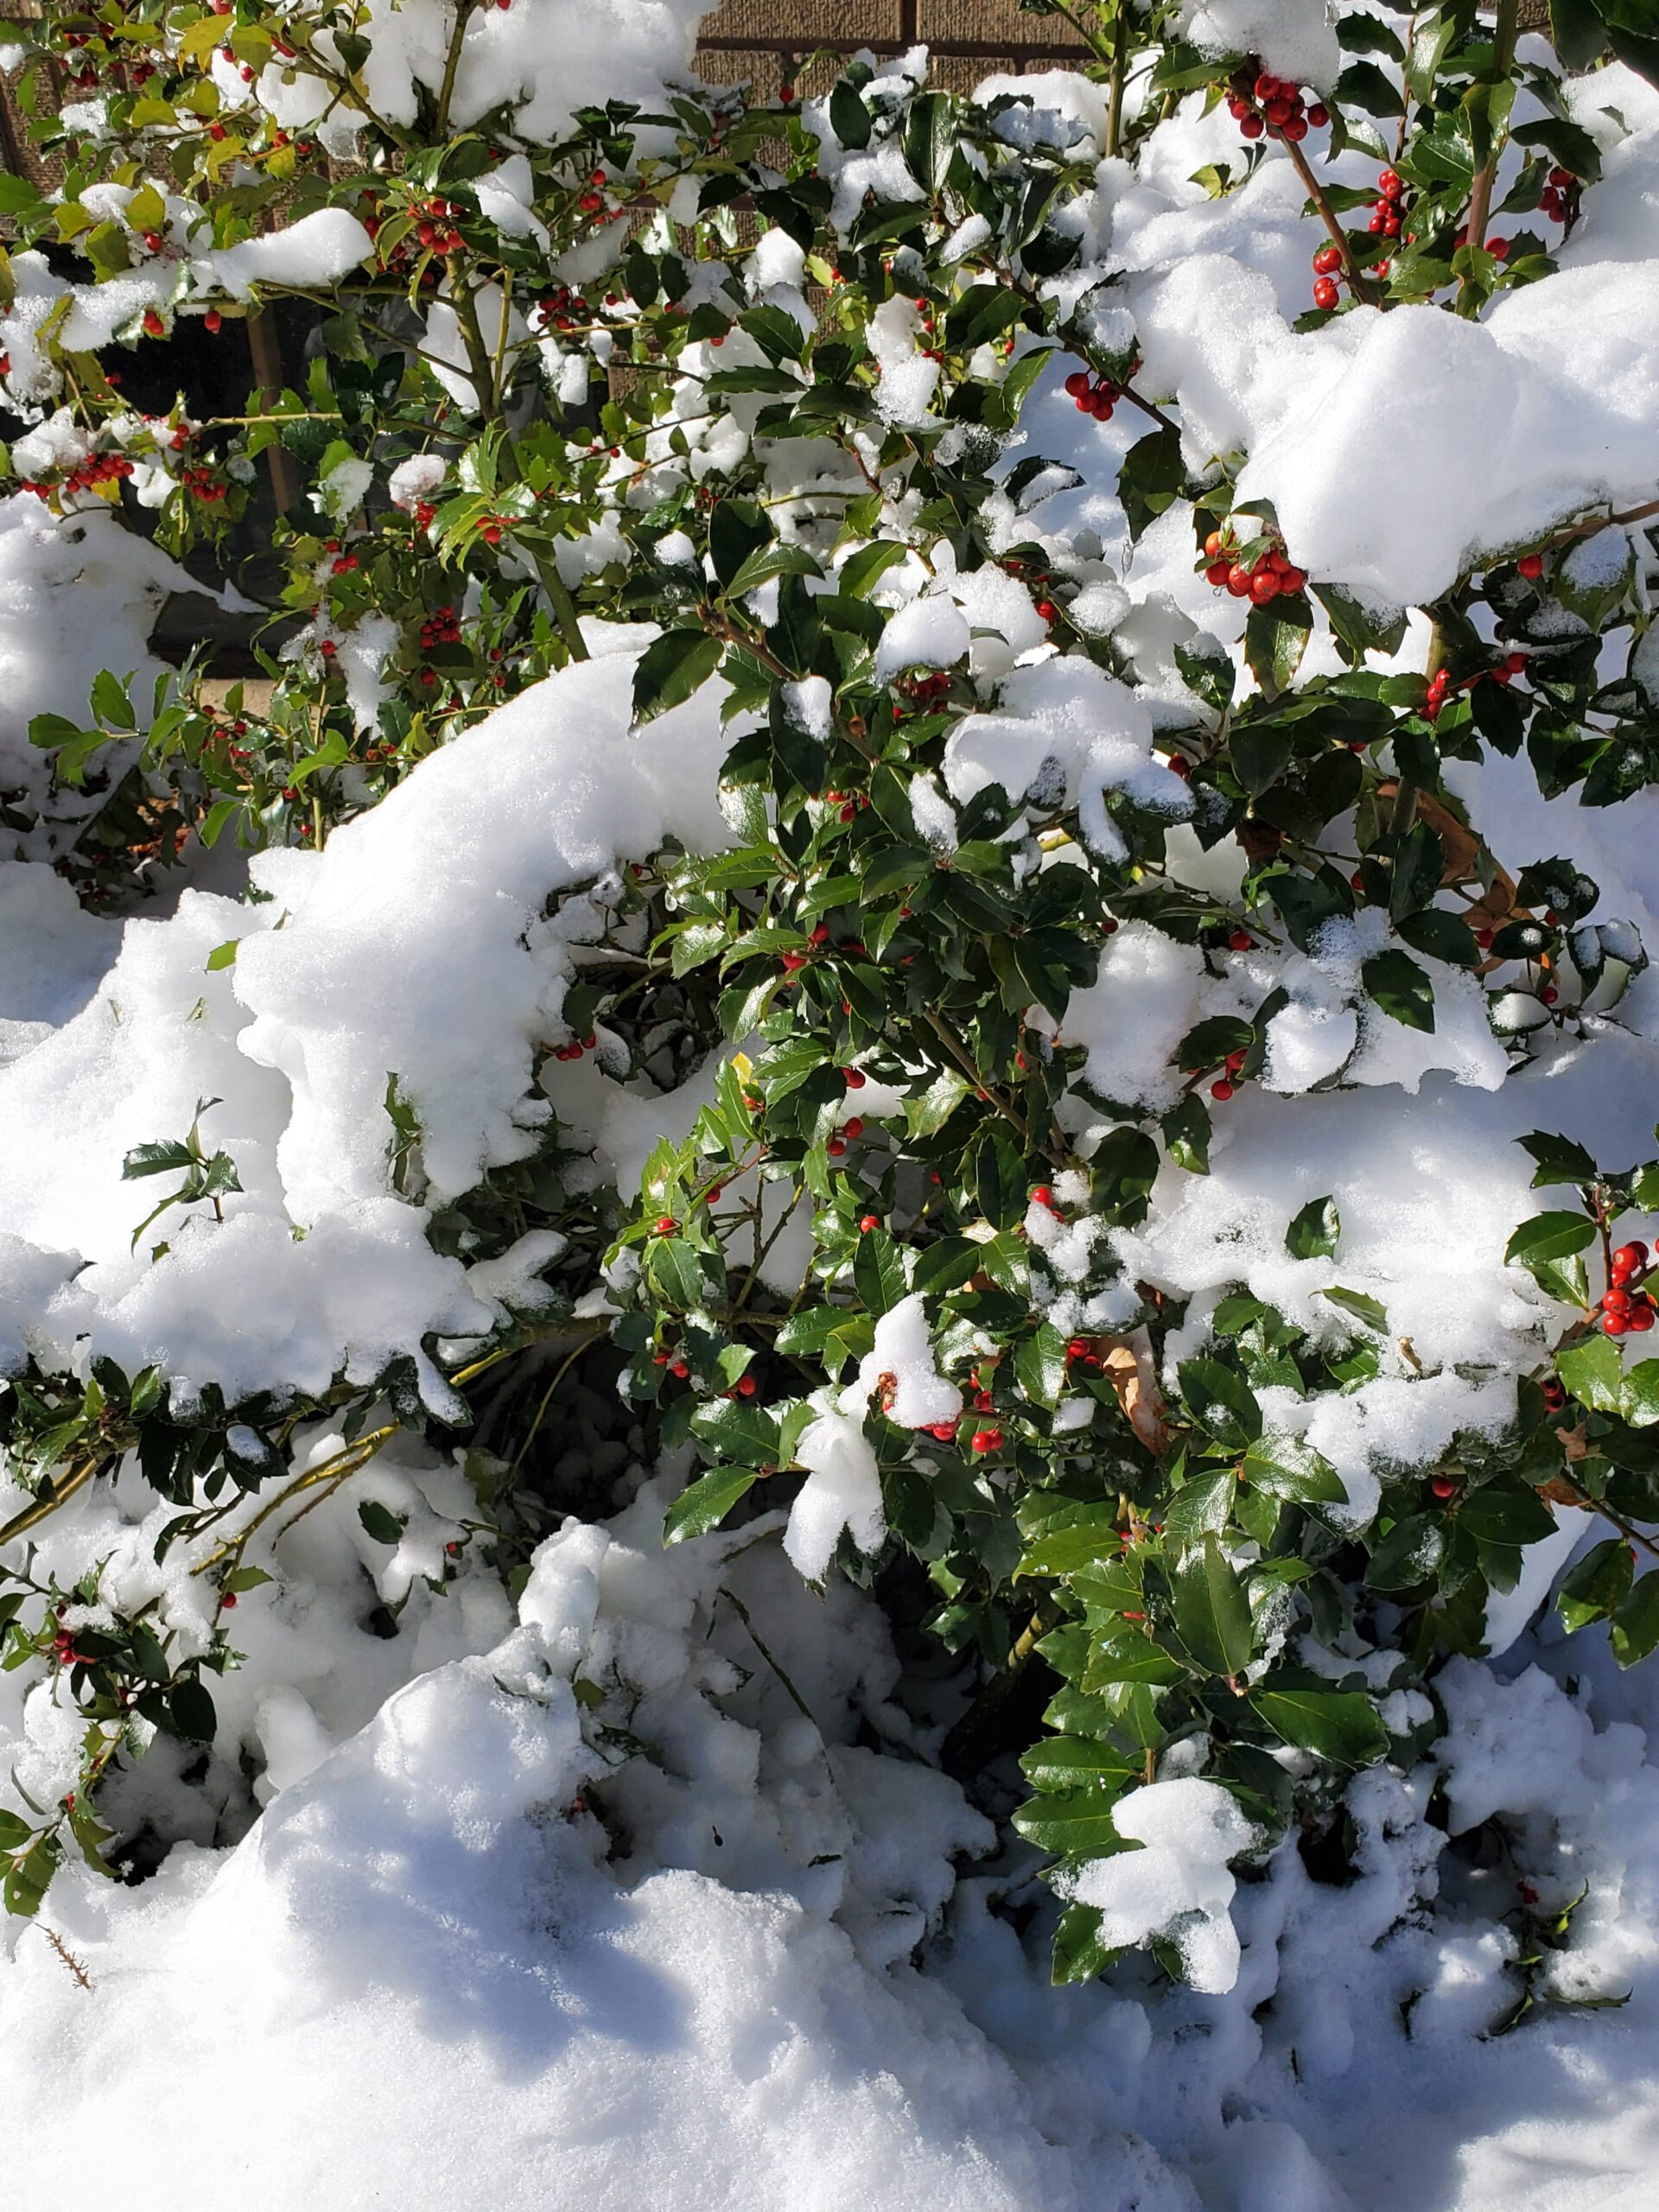 winter garden snow garden holly with snow